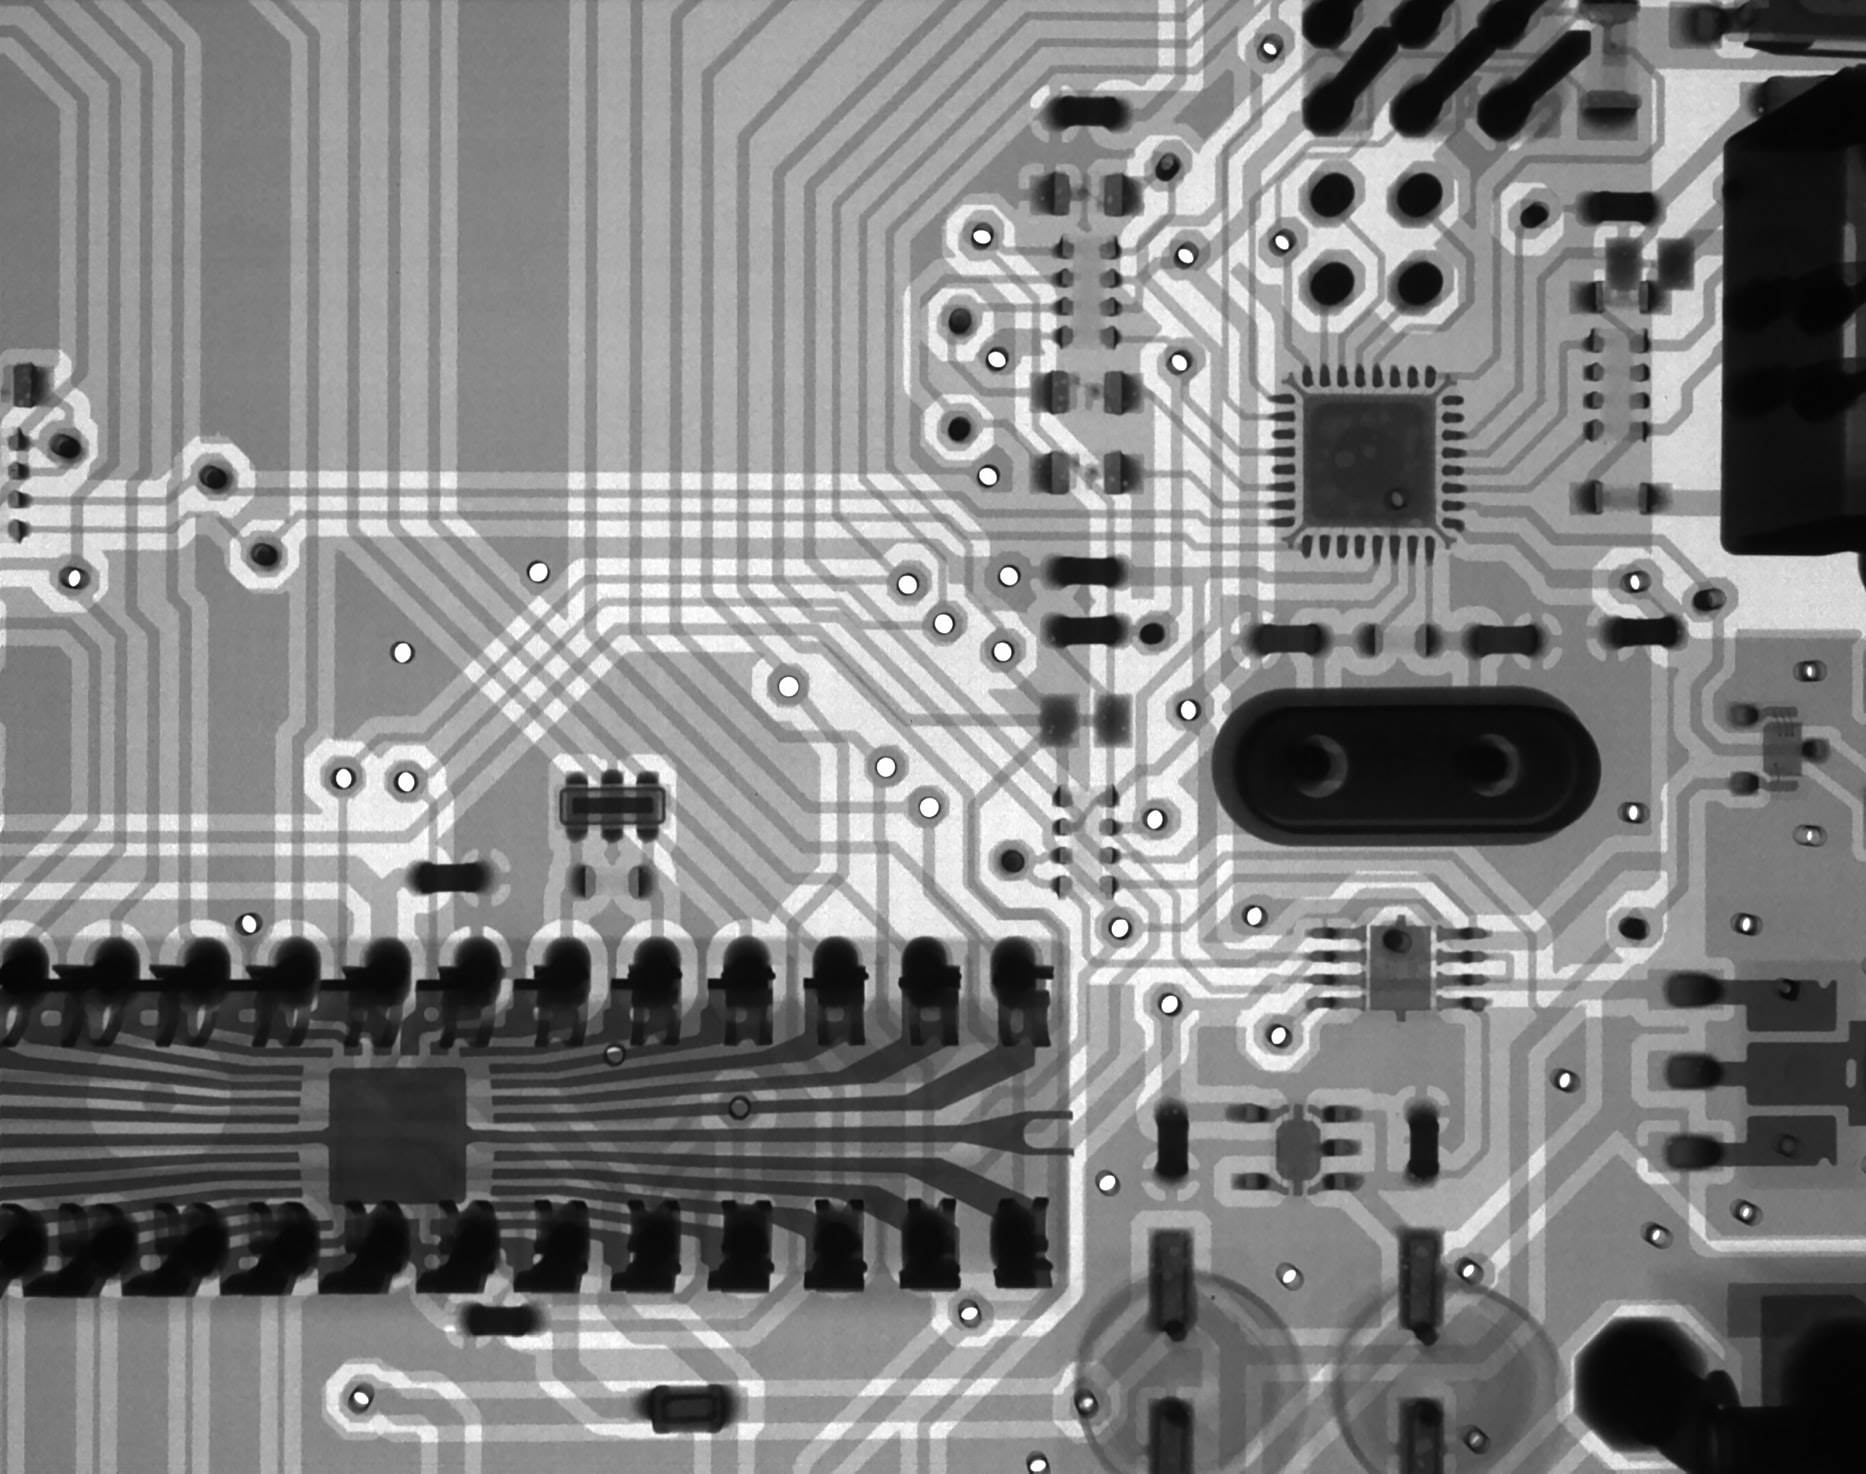 Black and White Image of Microchip